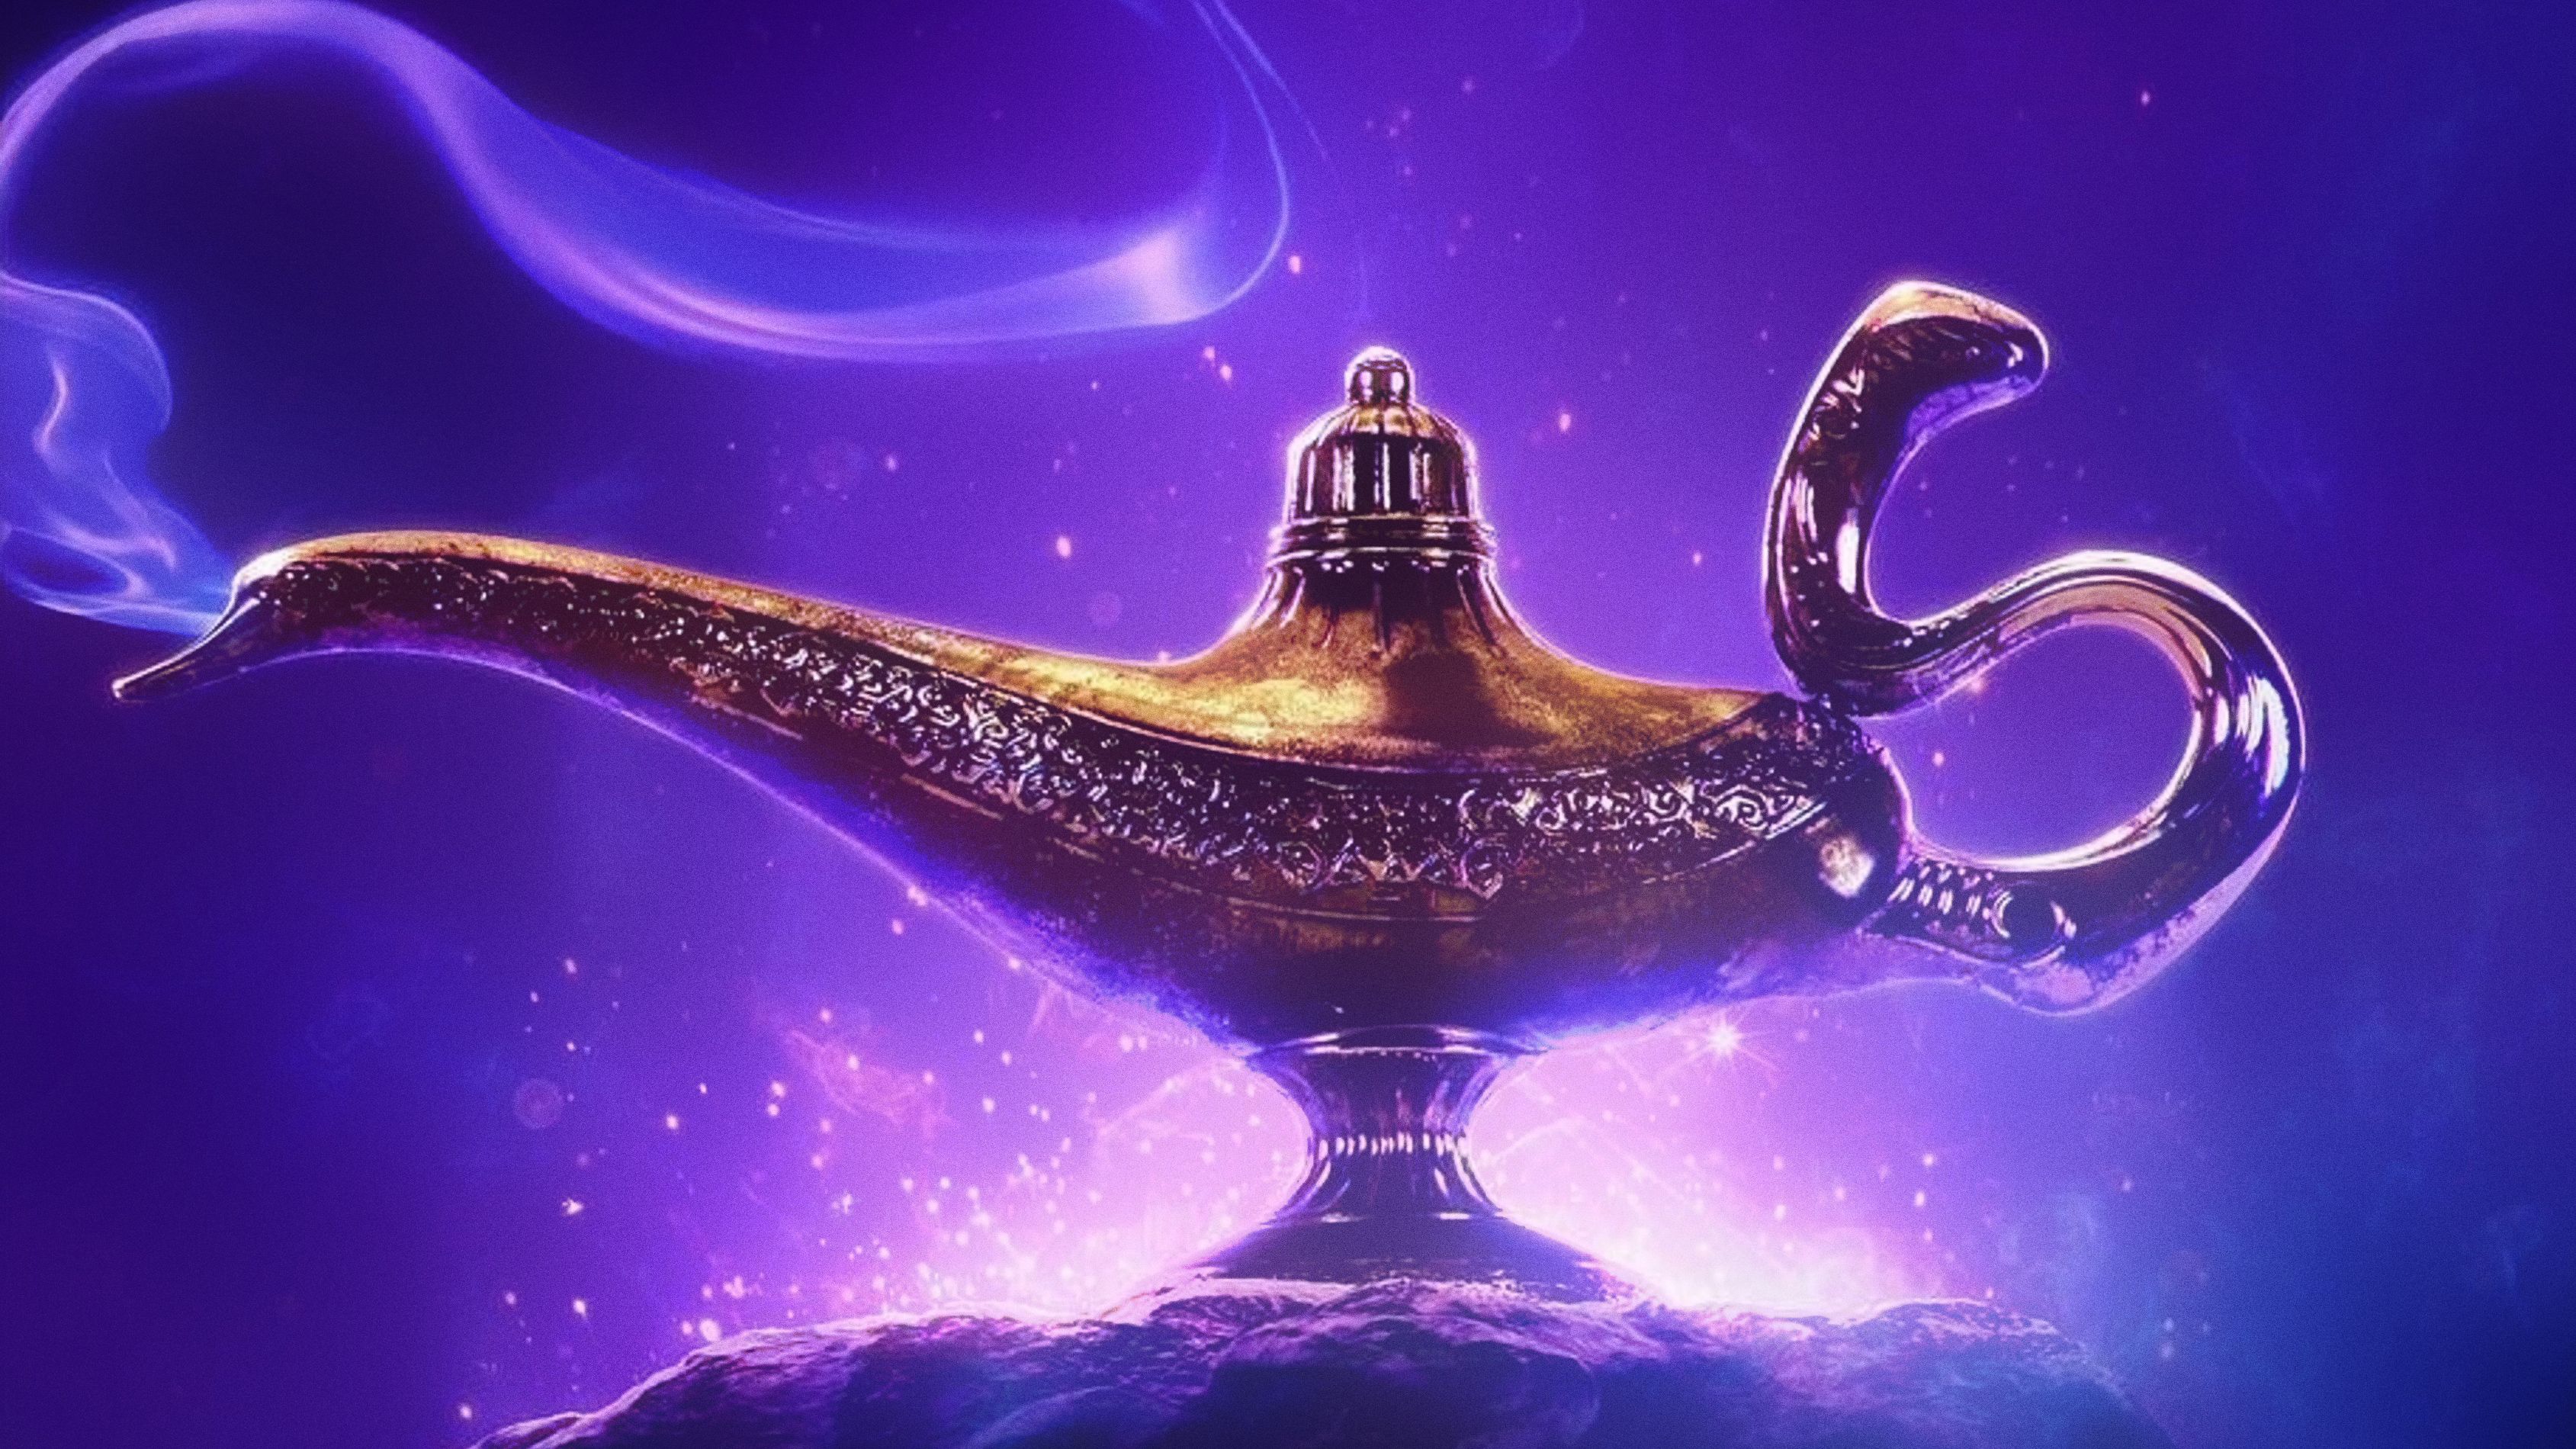 Aladdin Movie 2019 4k Hd Movies 4k Wallpapers Images